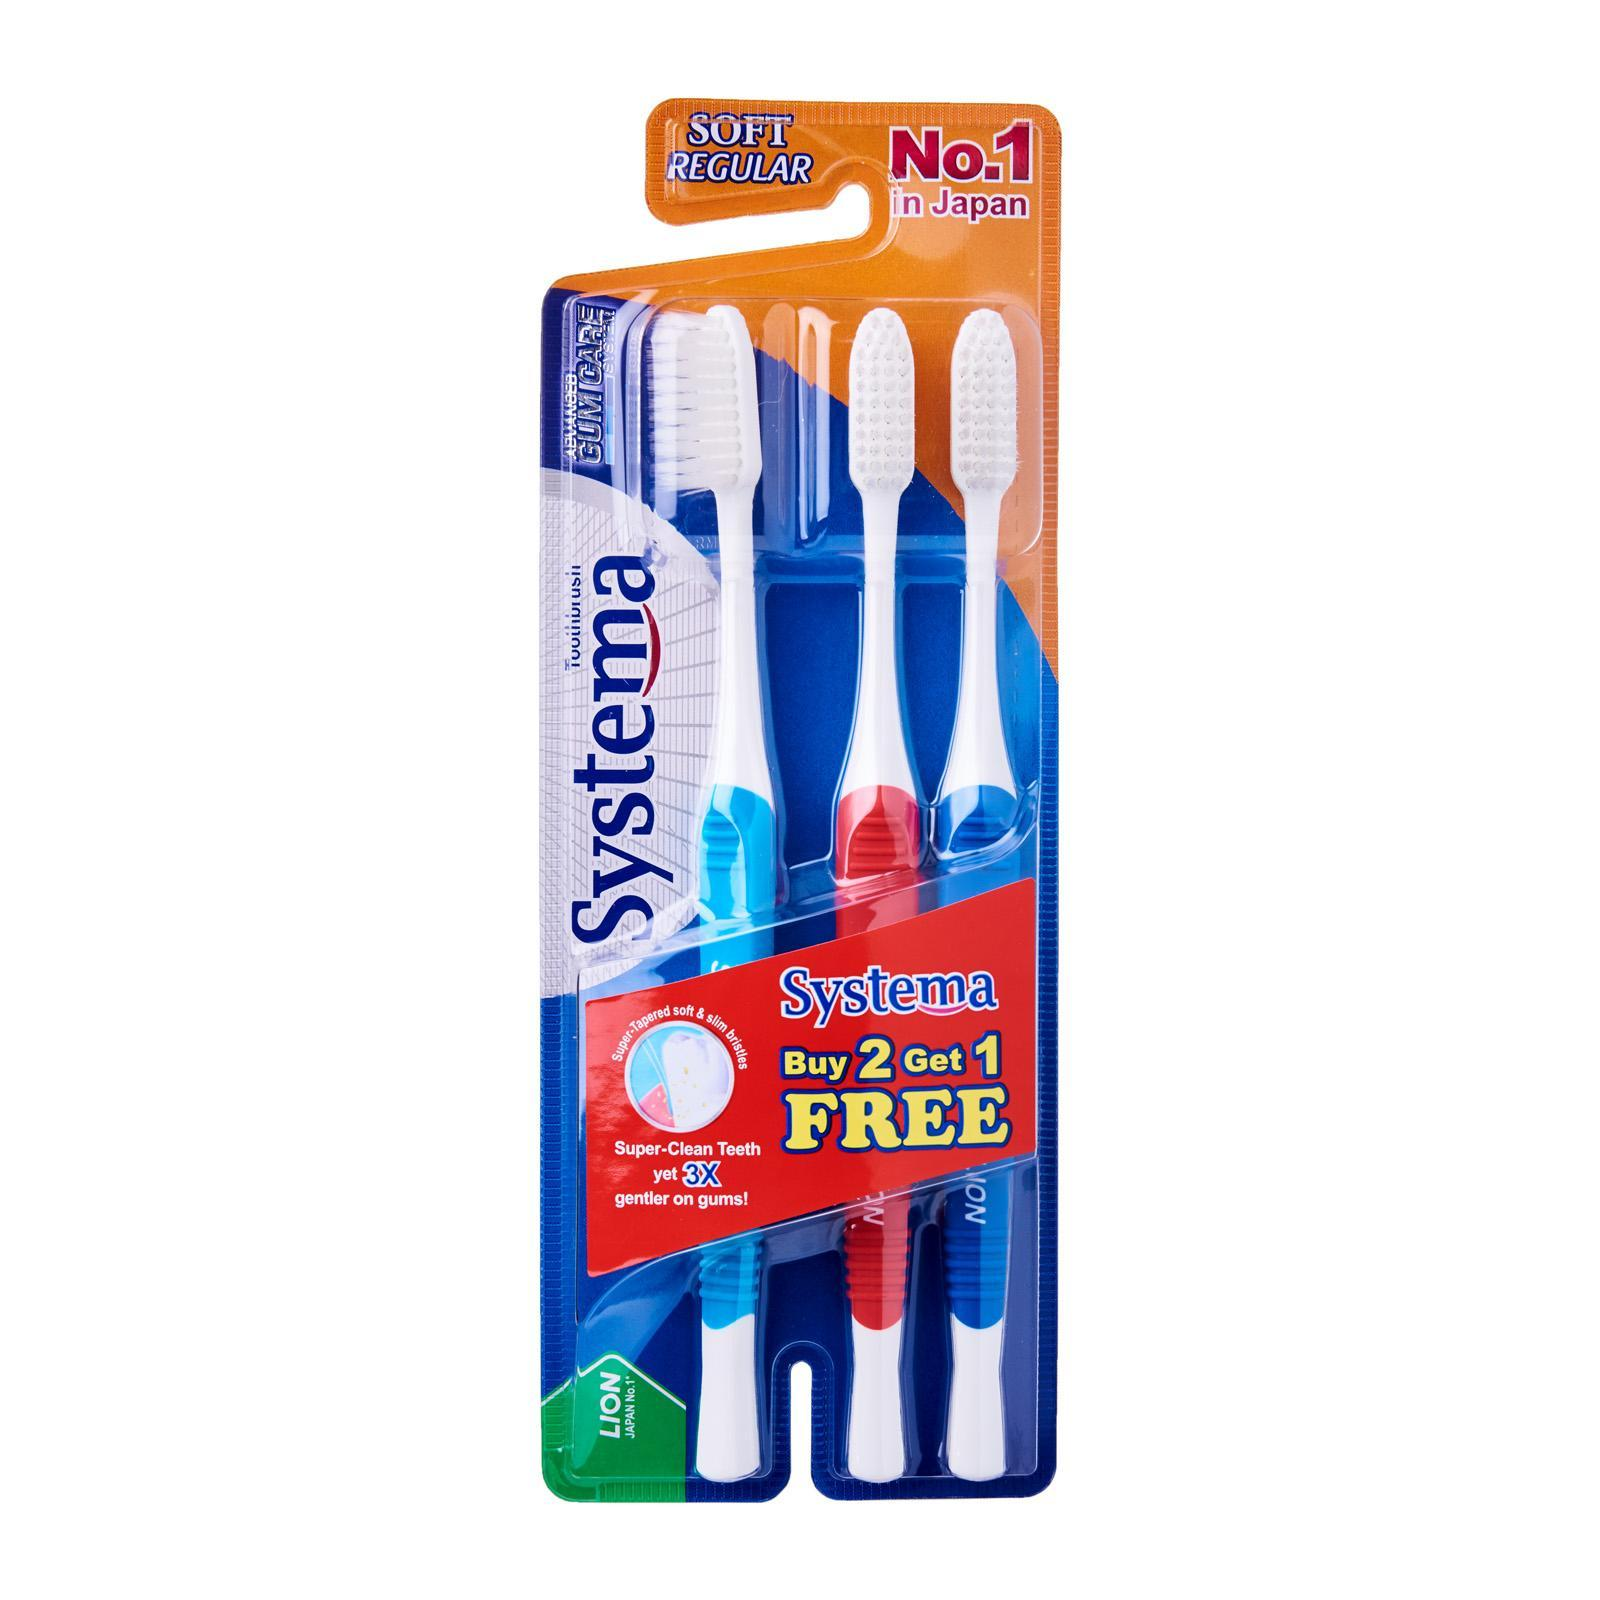 SYSTEMA Gum Care Toothbrush - Regular Soft B2G1F